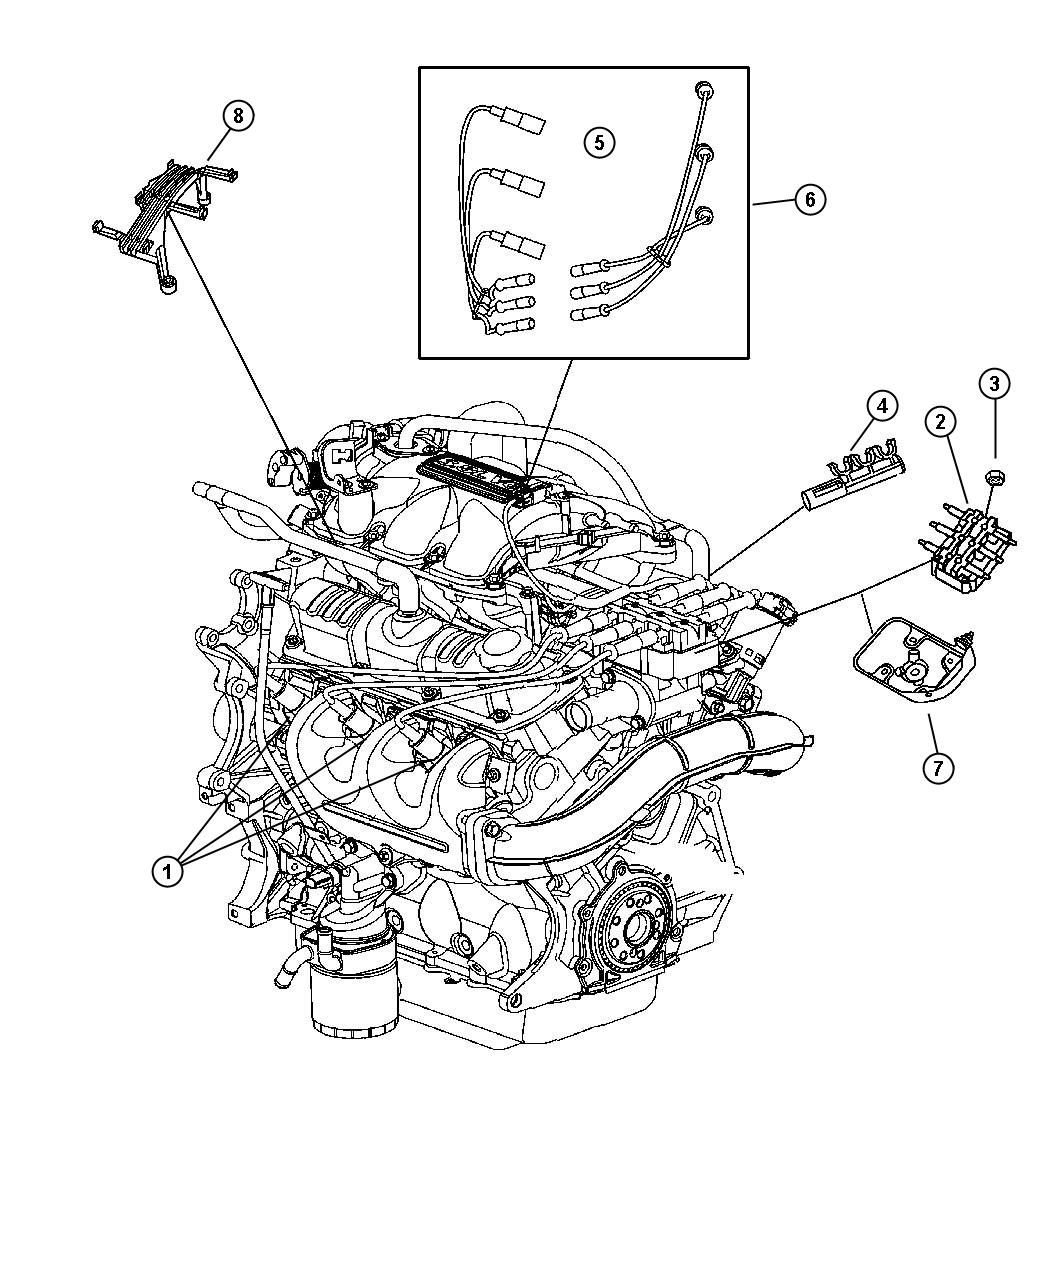 Ford Freestar Egr Valve Location